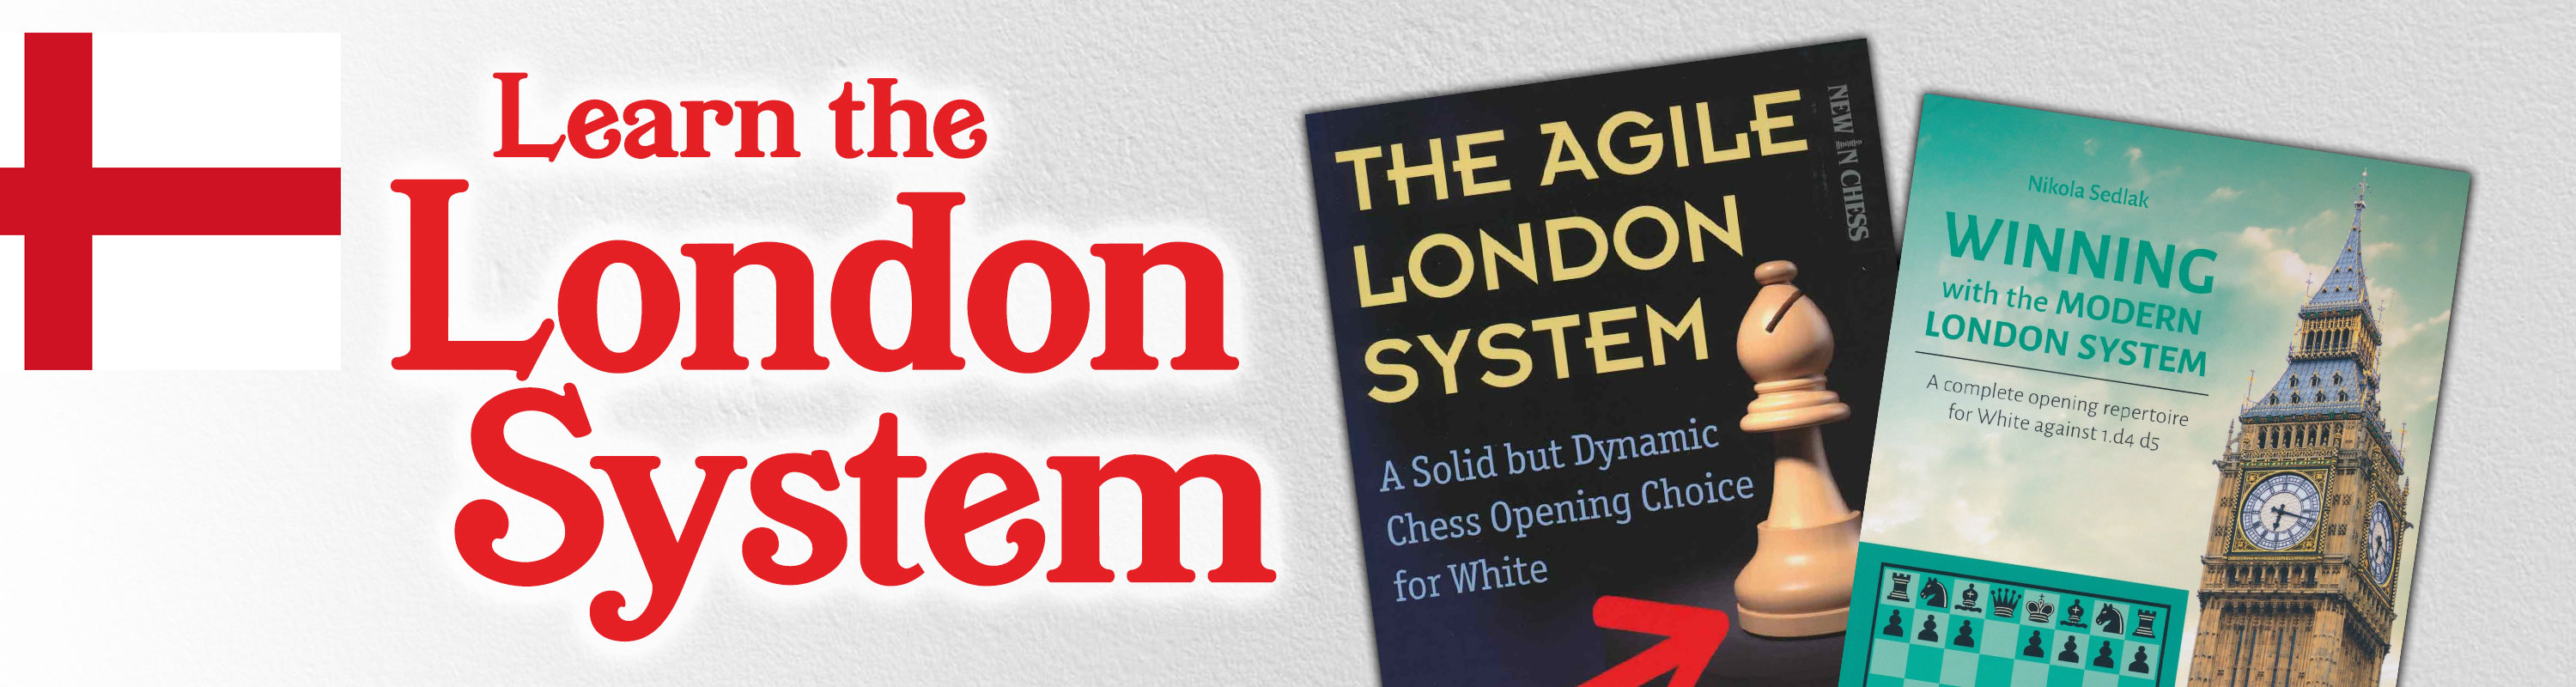 Learn the London System